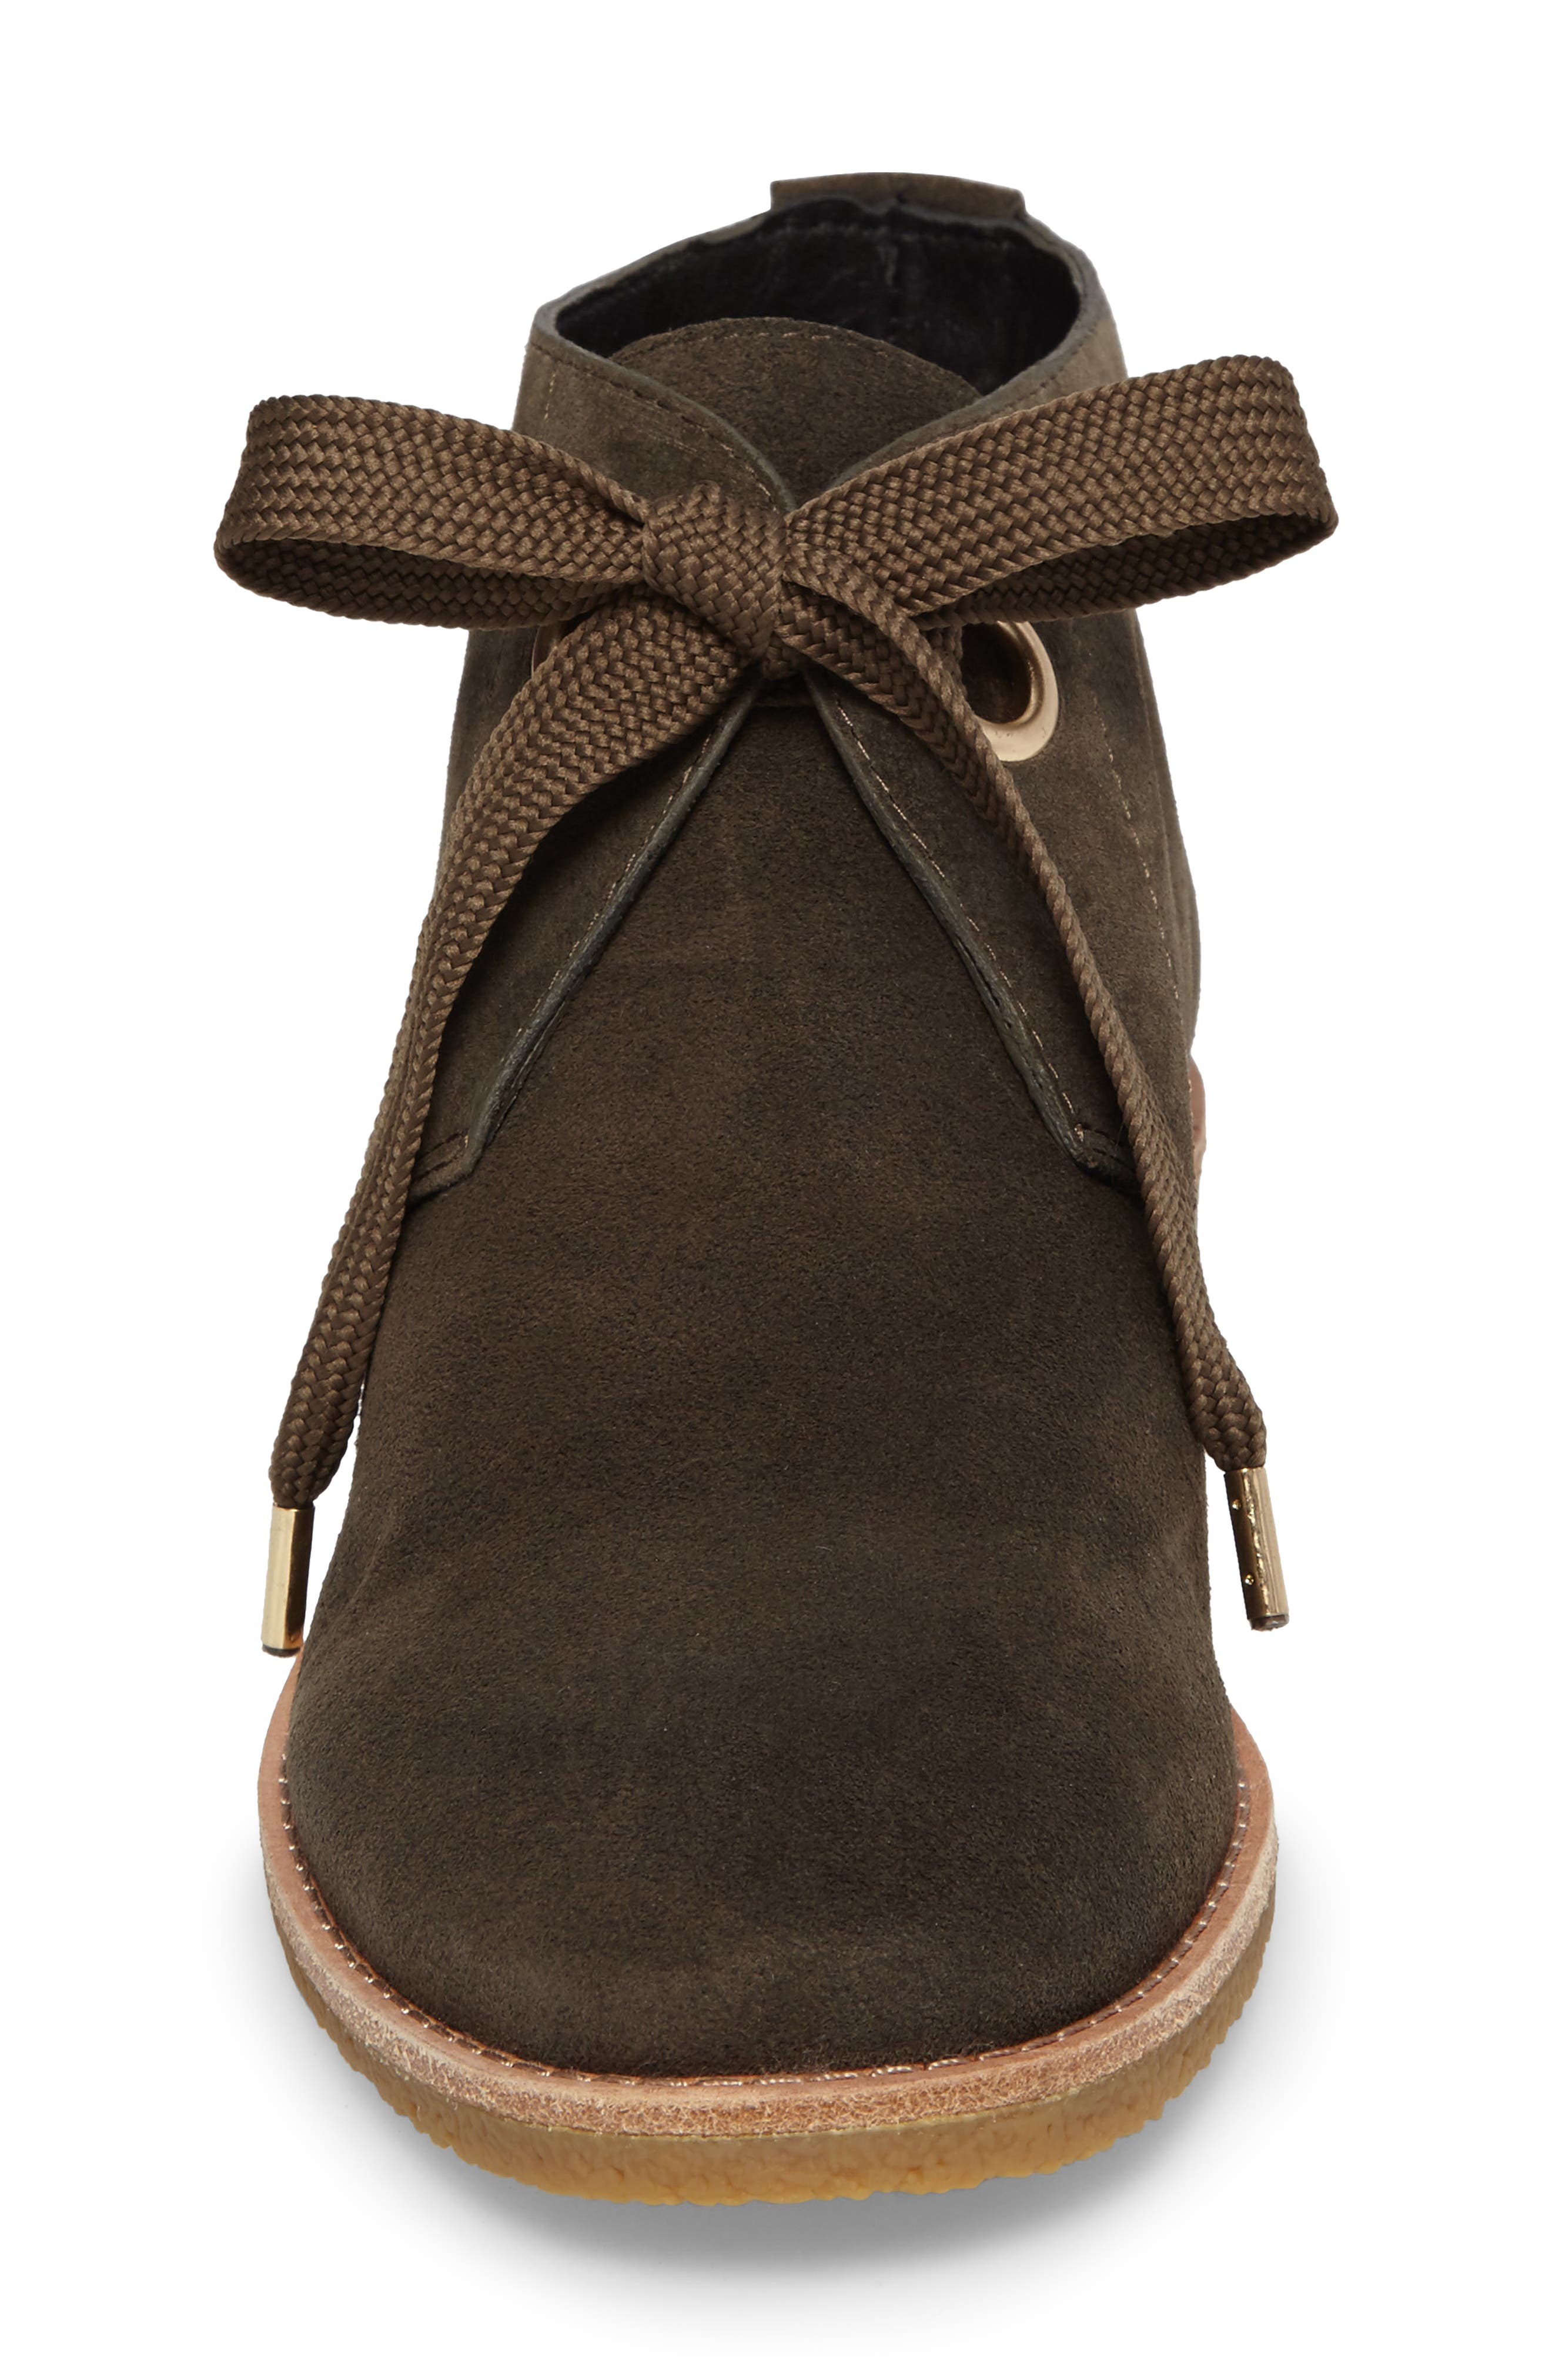 barrow chukka boot,                             Alternate thumbnail 4, color,                             Olive Green Suede